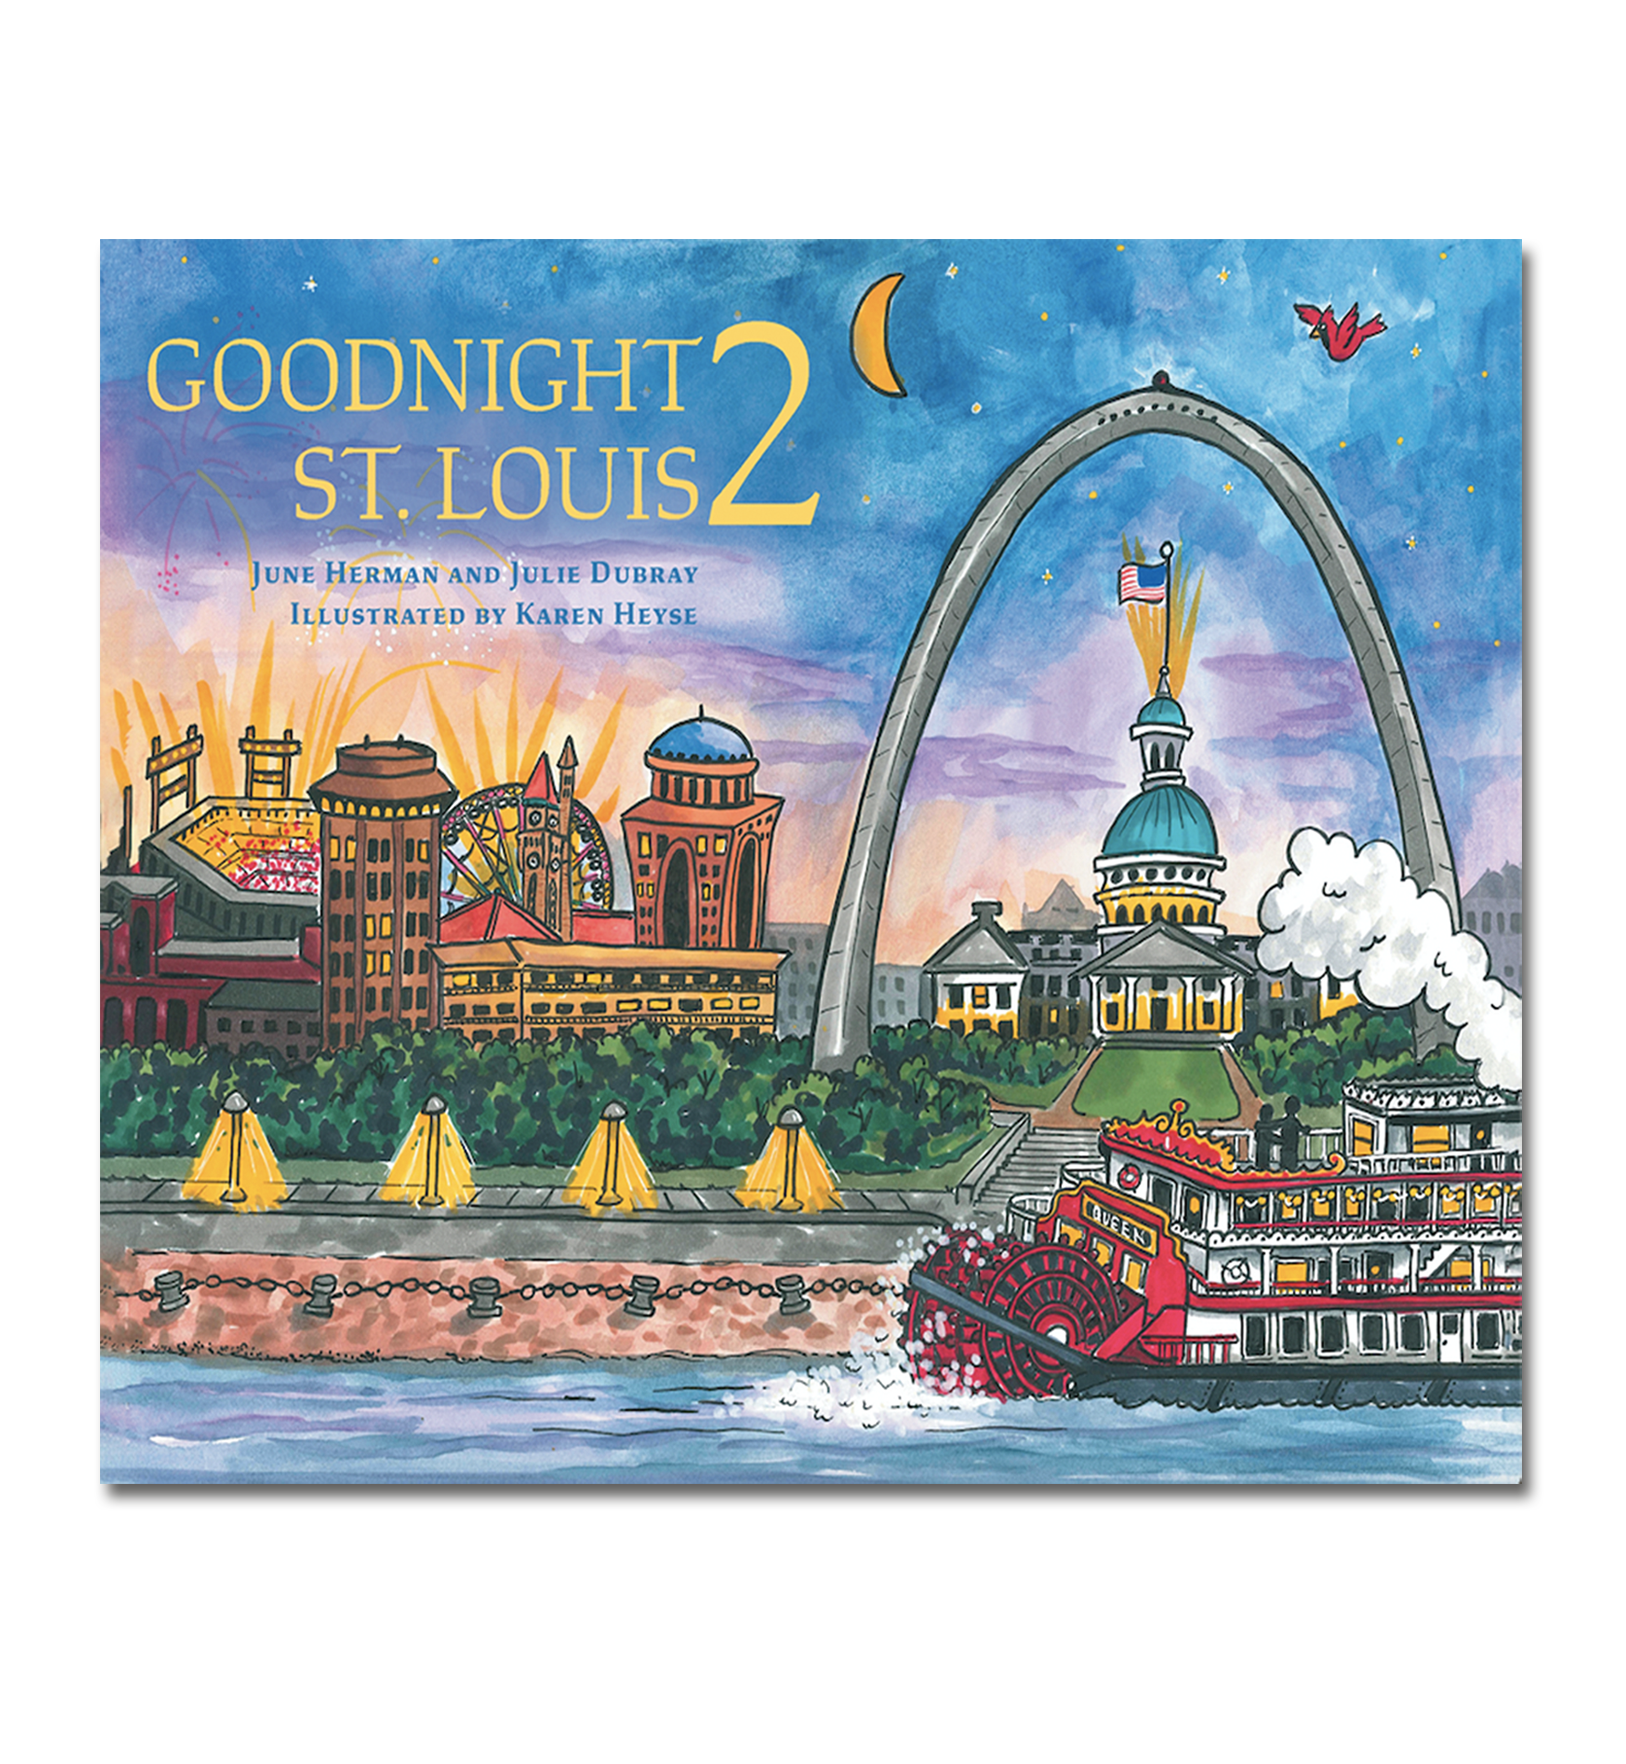 Goodnight 2 St. Louis Book<br>Hard Cover Only<br><br>Available Online and<br>at Retailers